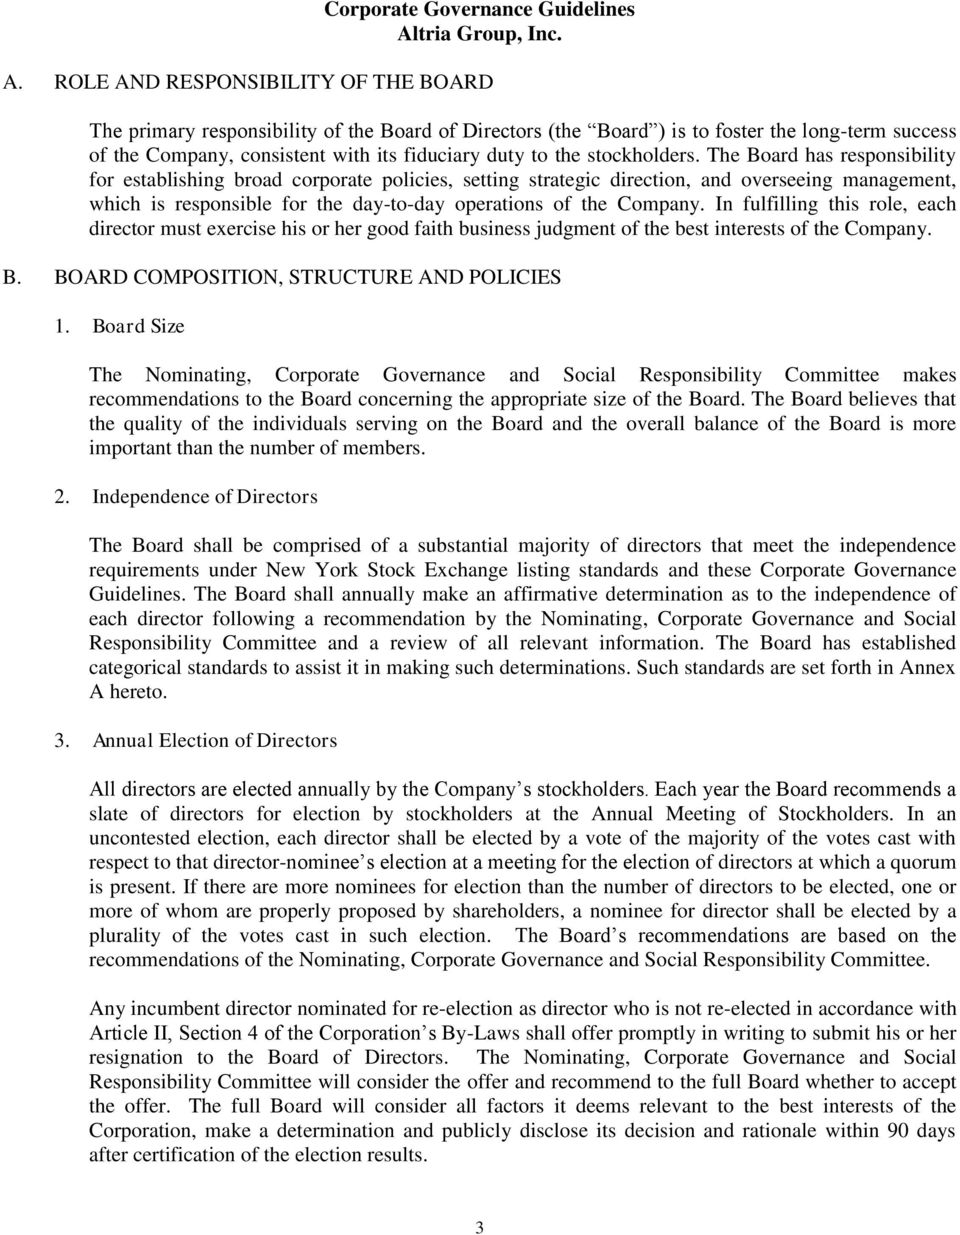 Corporate Governance Guidelines Altria Group, Inc  - PDF